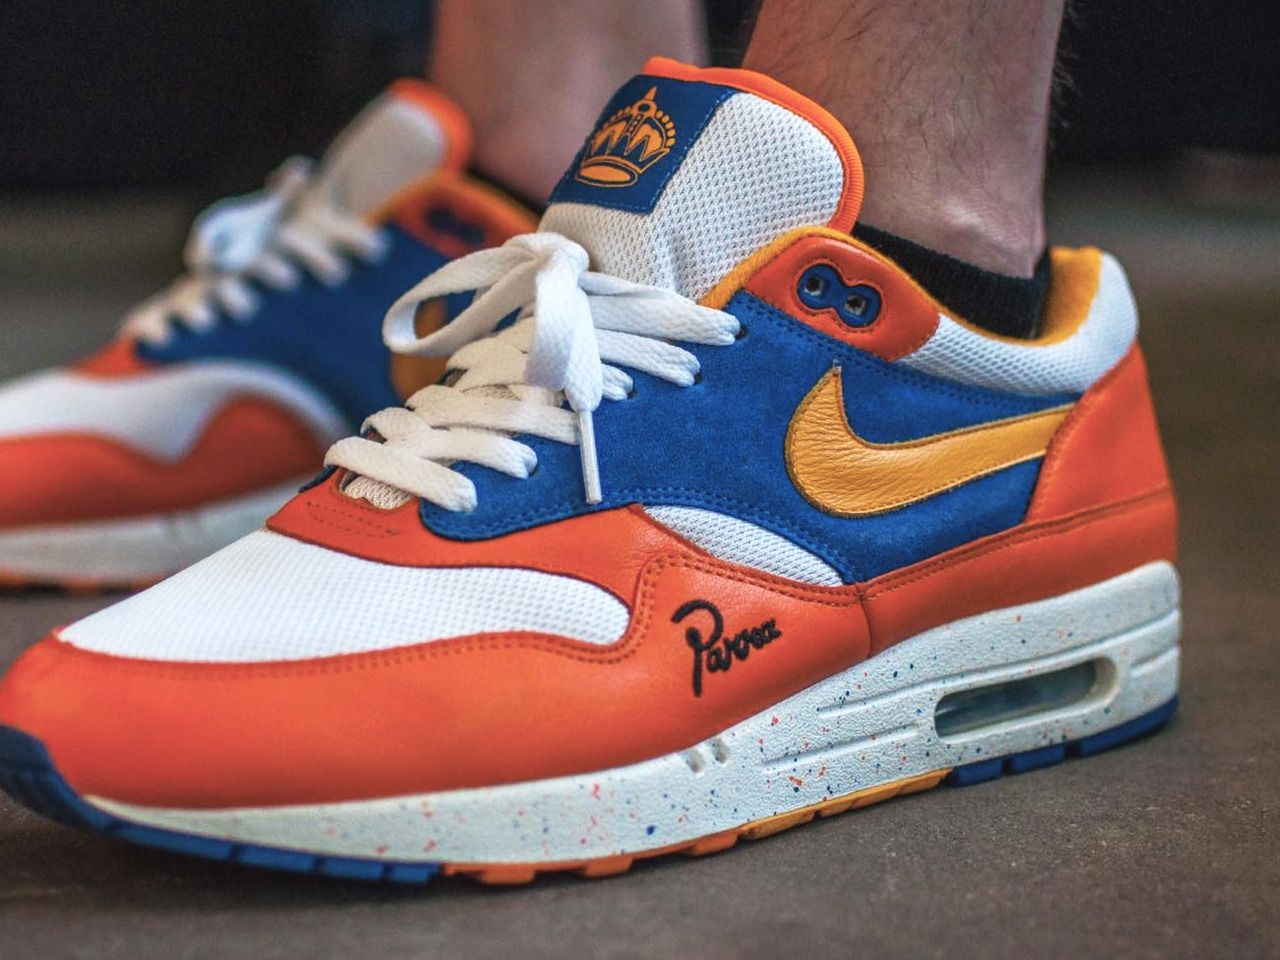 check out b9485 a690a Parra x Nike Air Max 1 Albert Heijn - 2005 (by joeyjcbs)